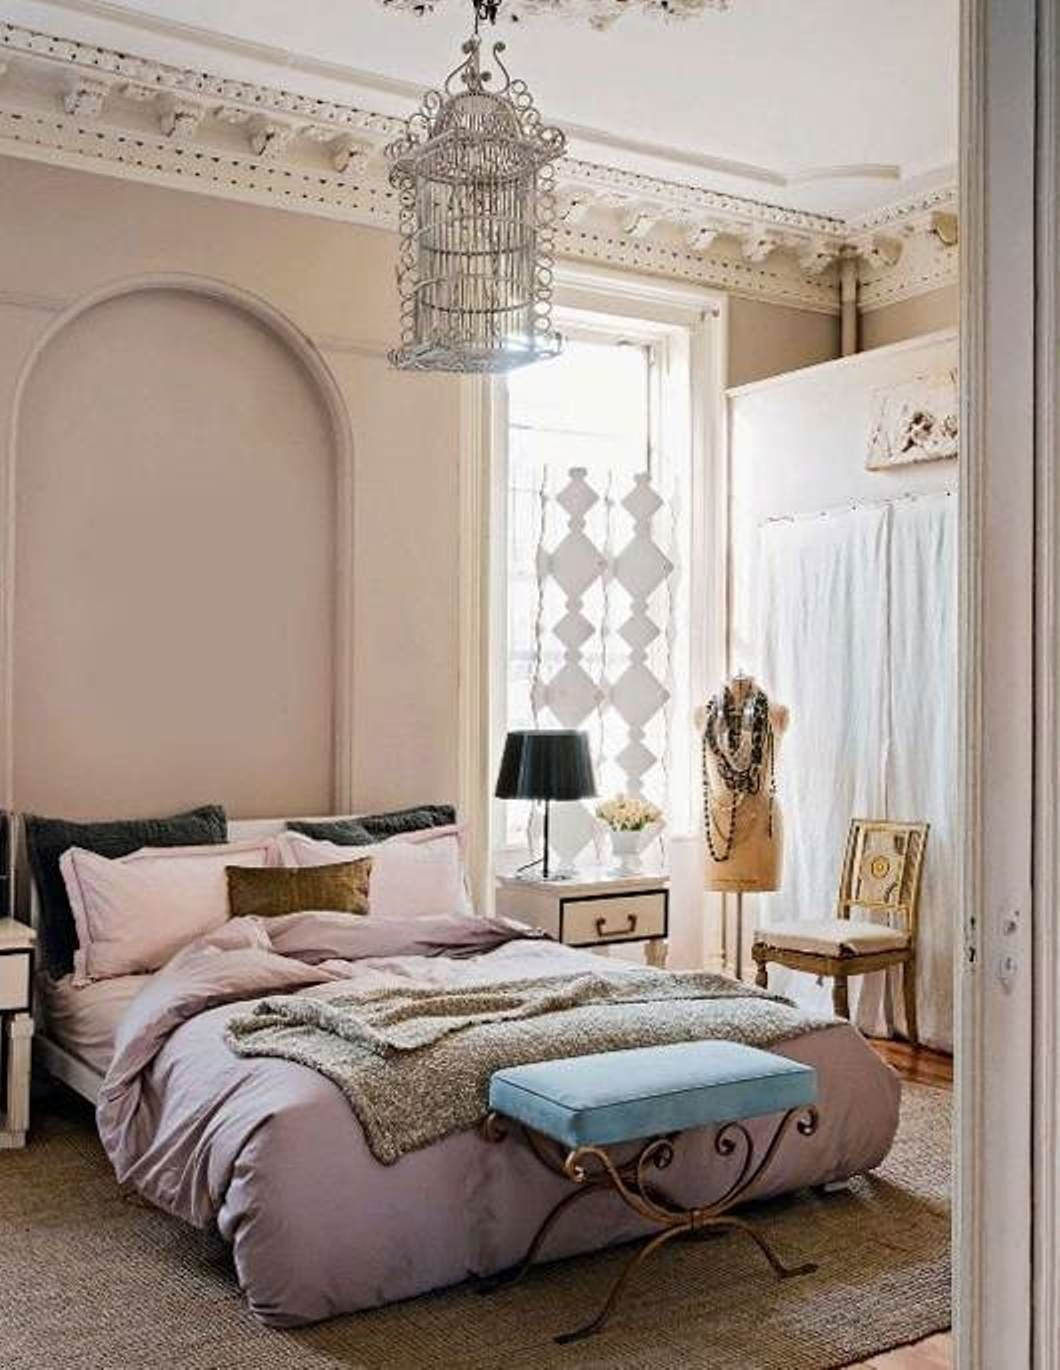 Apartment Decorating Ideas For Women perfect bedroom decorating ideas for women | apartment ideas